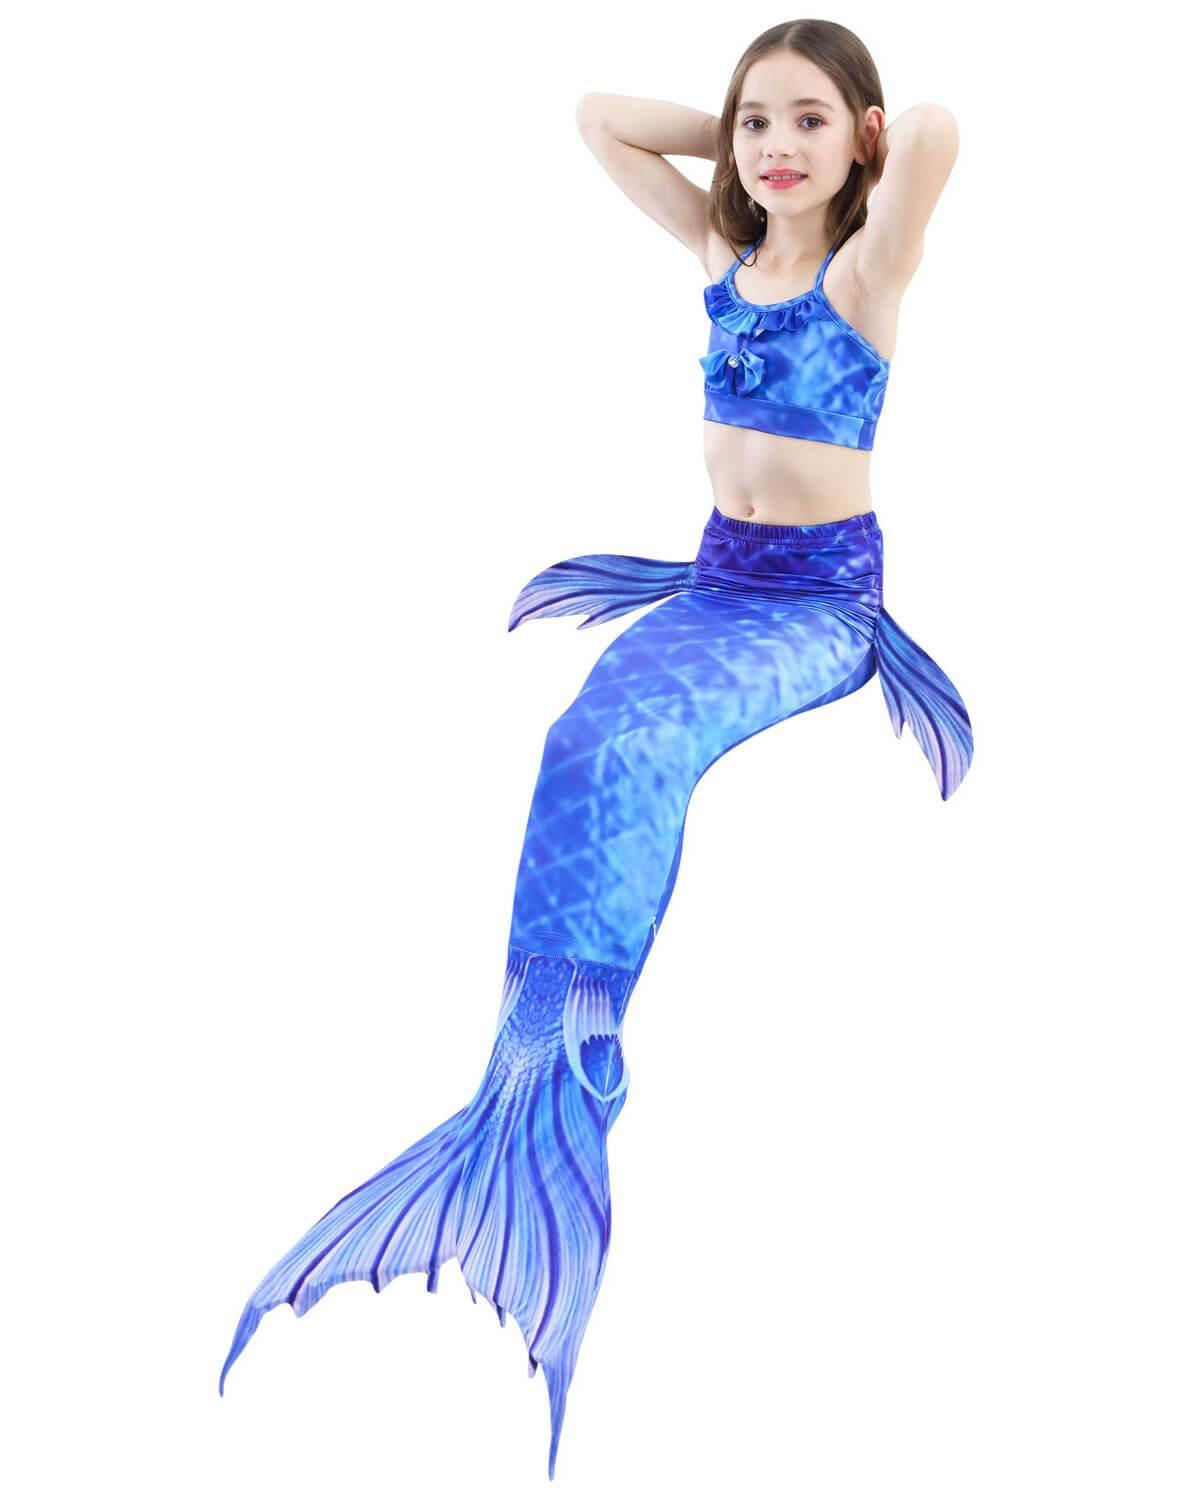 ea2cfb1541 Blue Beta Fish Top Bottom And Mermaid Tail With Fins Girls Swimsuit ...